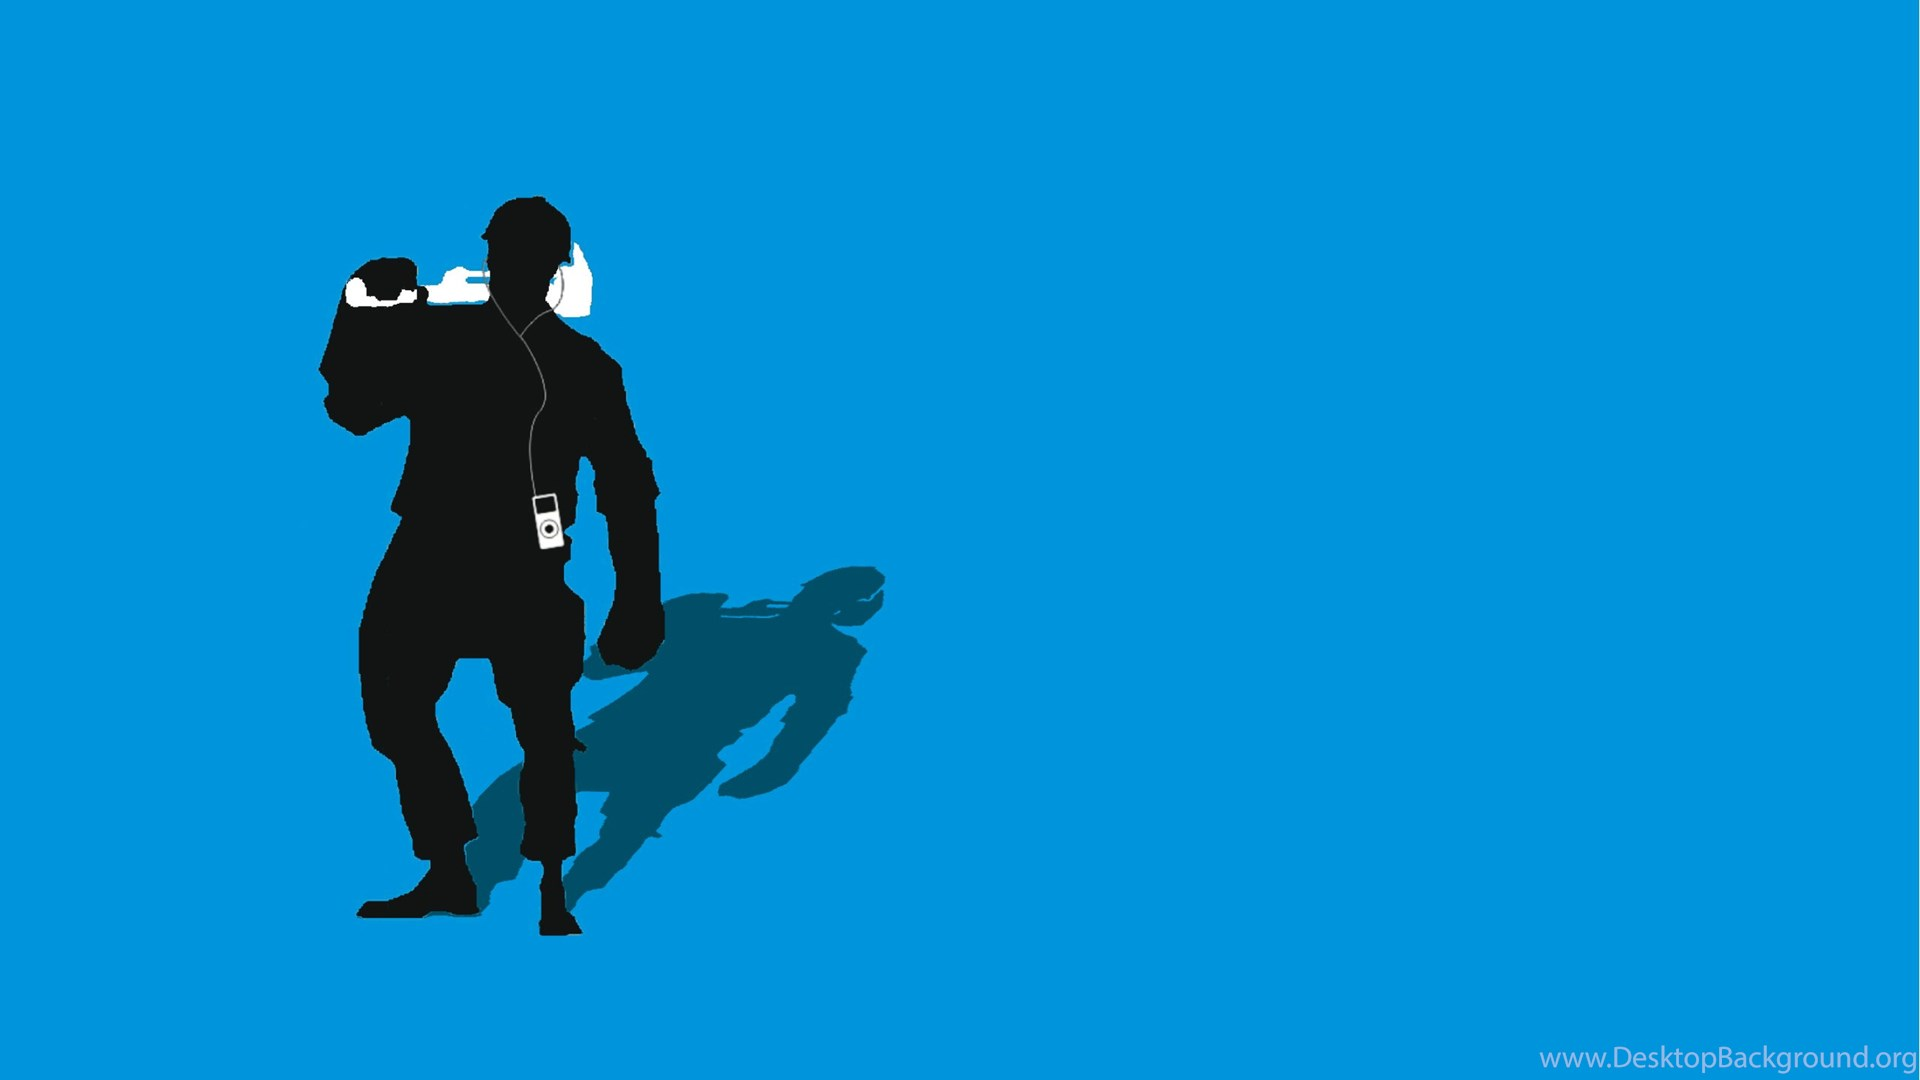 1920x1080 Tf2 Blue Engineer Silhouette Ipodearbuds 2560x1600 By Cwegrecki